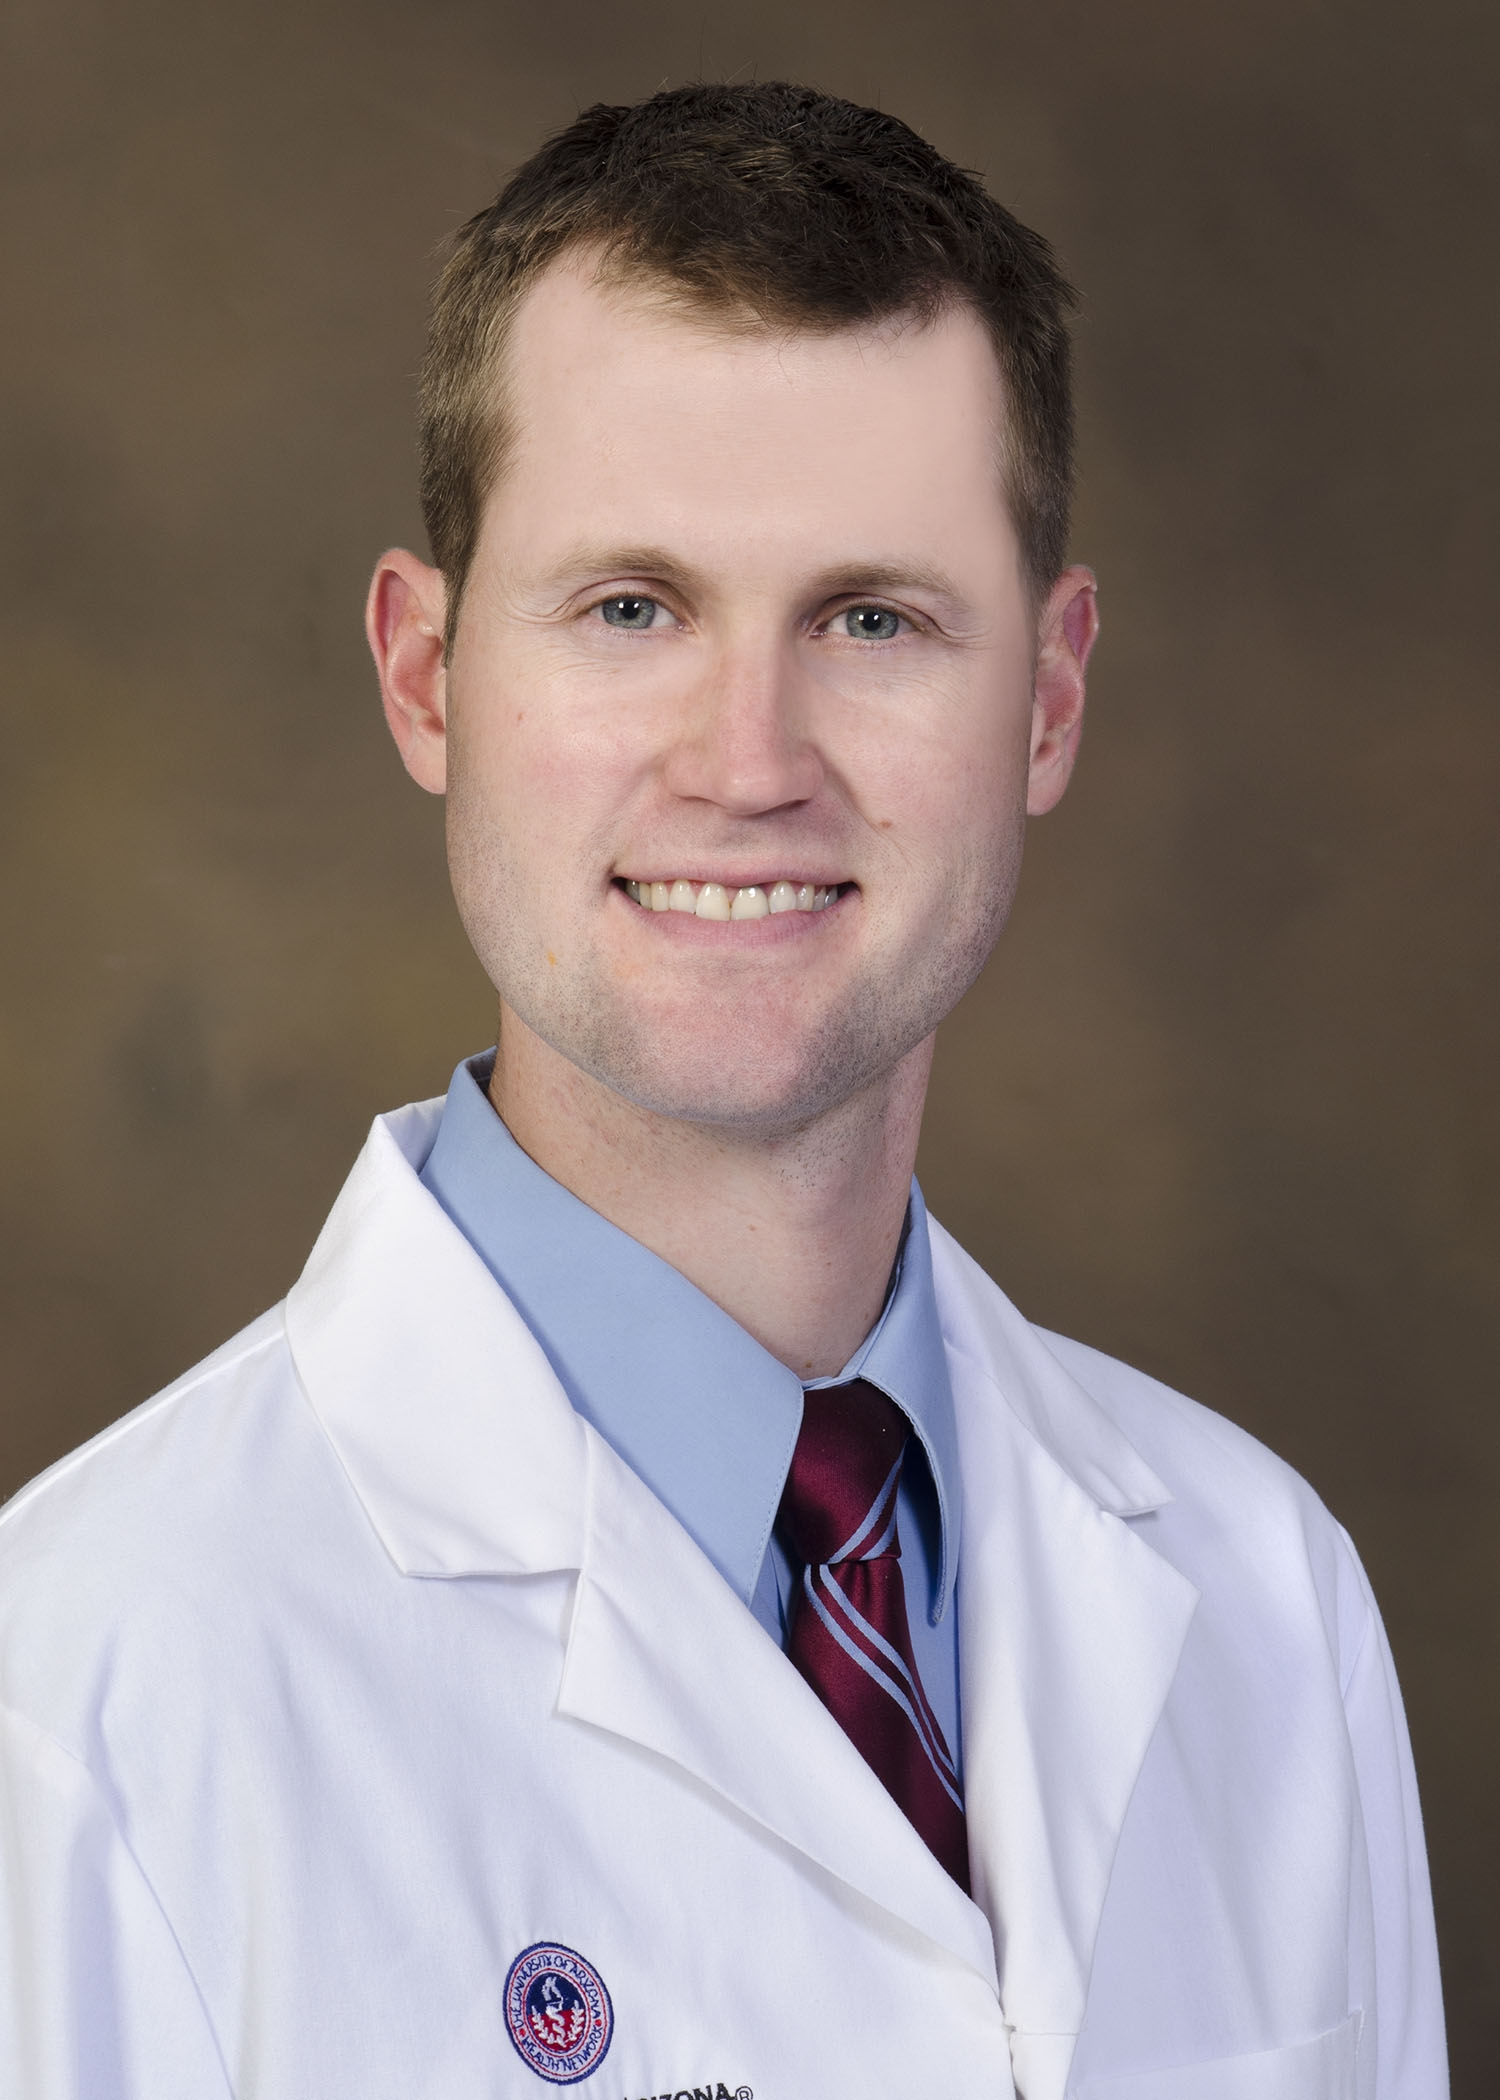 Aaron Leetch, MD. assistant professor of emergency medicine and pediatrics